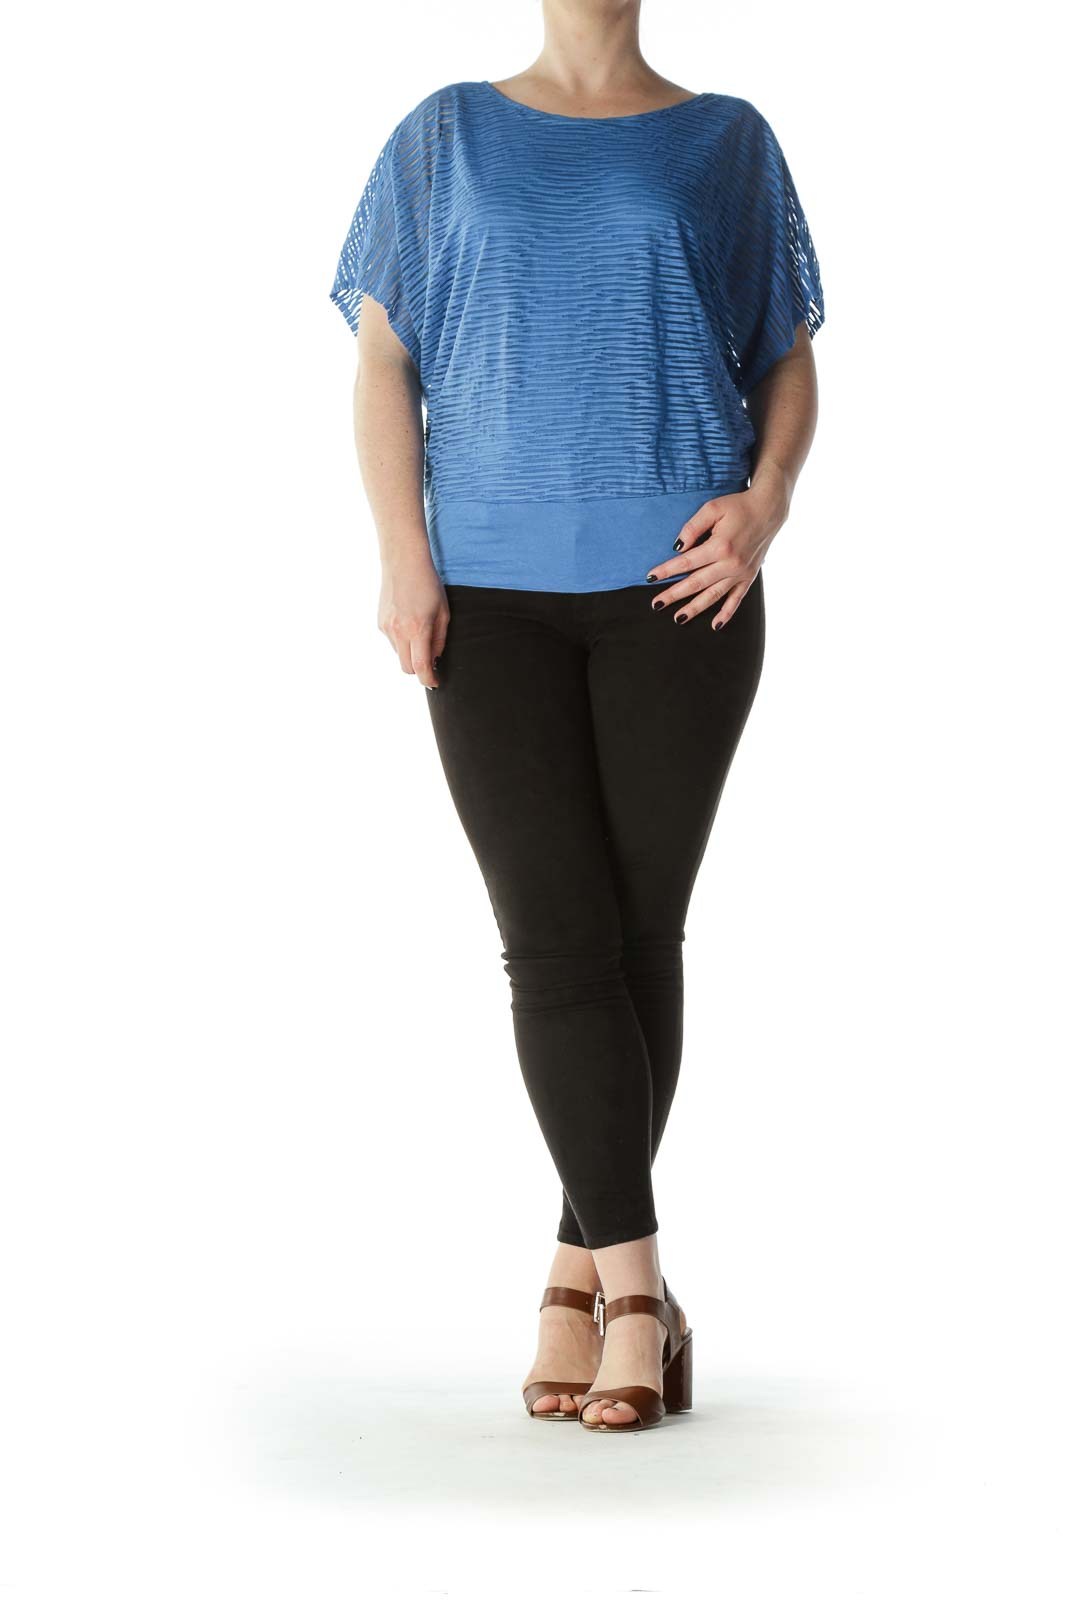 Blue Striped Translucent Over-Sized Bat-Sleeve Tee